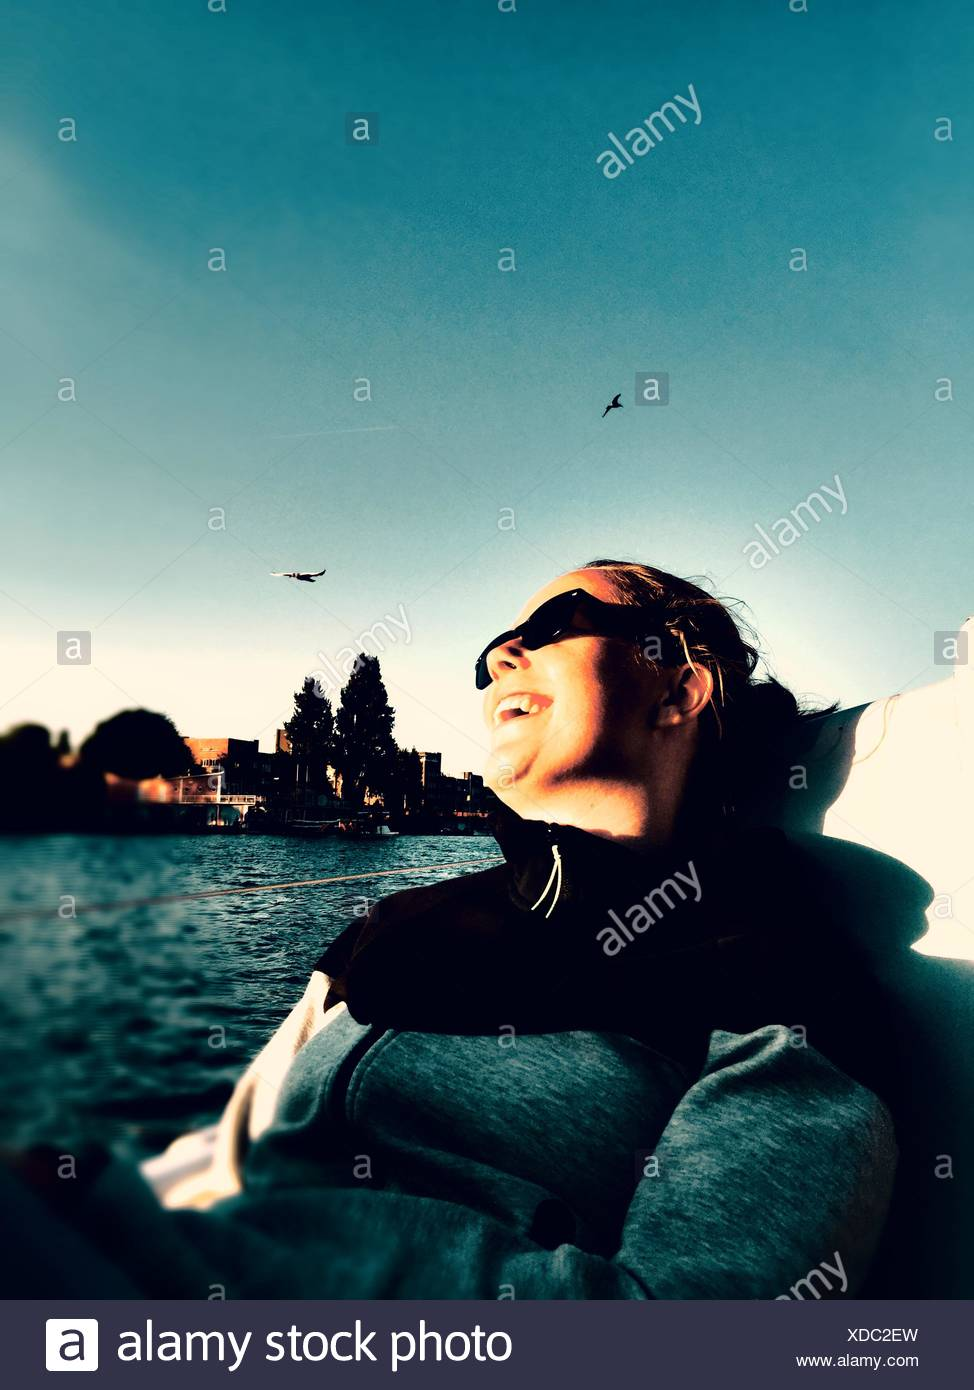 Low Angle View Of Woman Sitting In Nautical Vessel At River - Stock Image